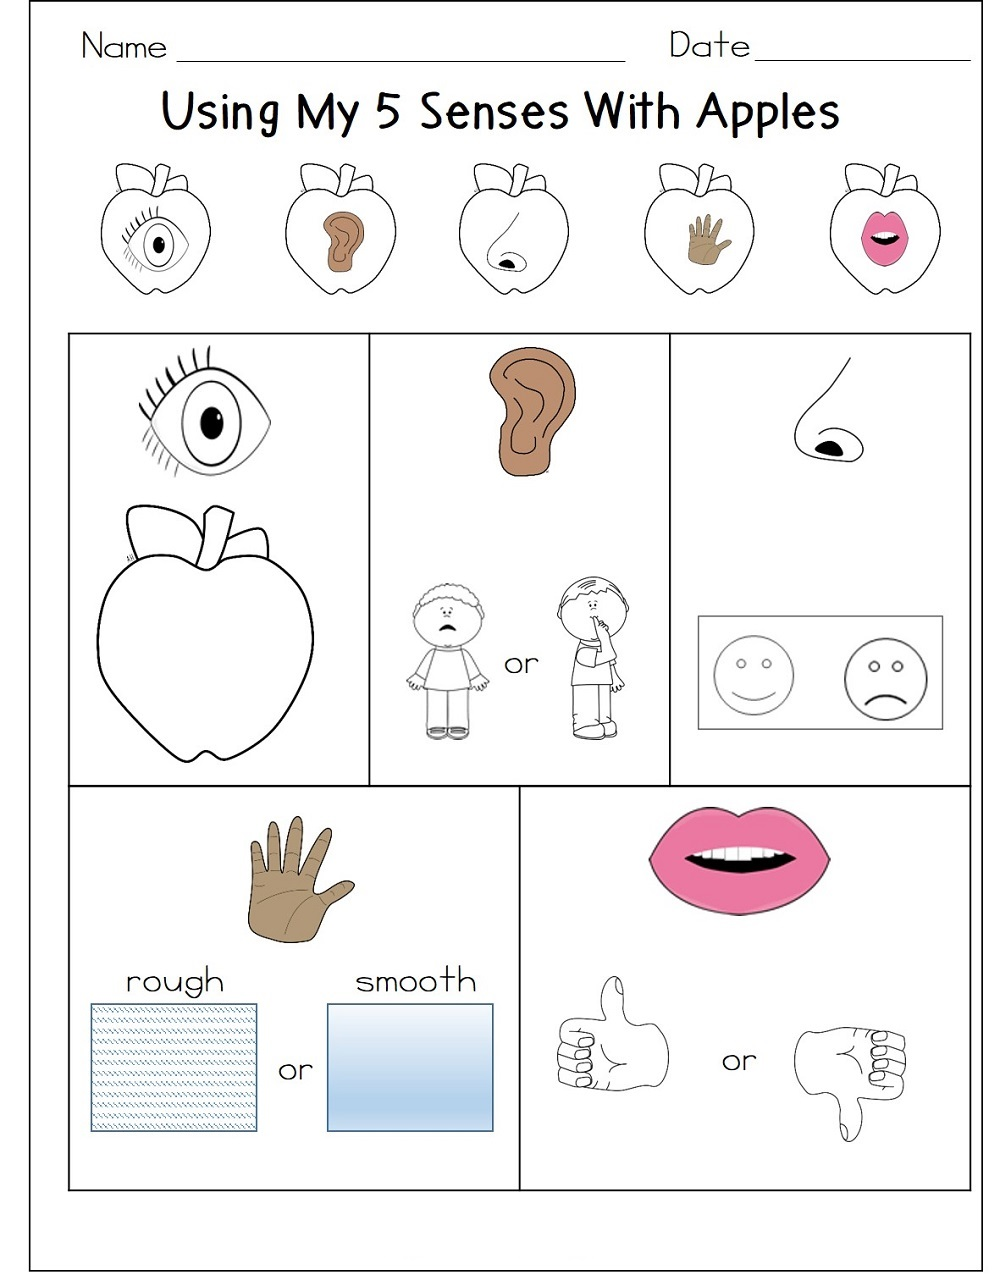 Ten Activities for Teaching the Five Senses | Education World